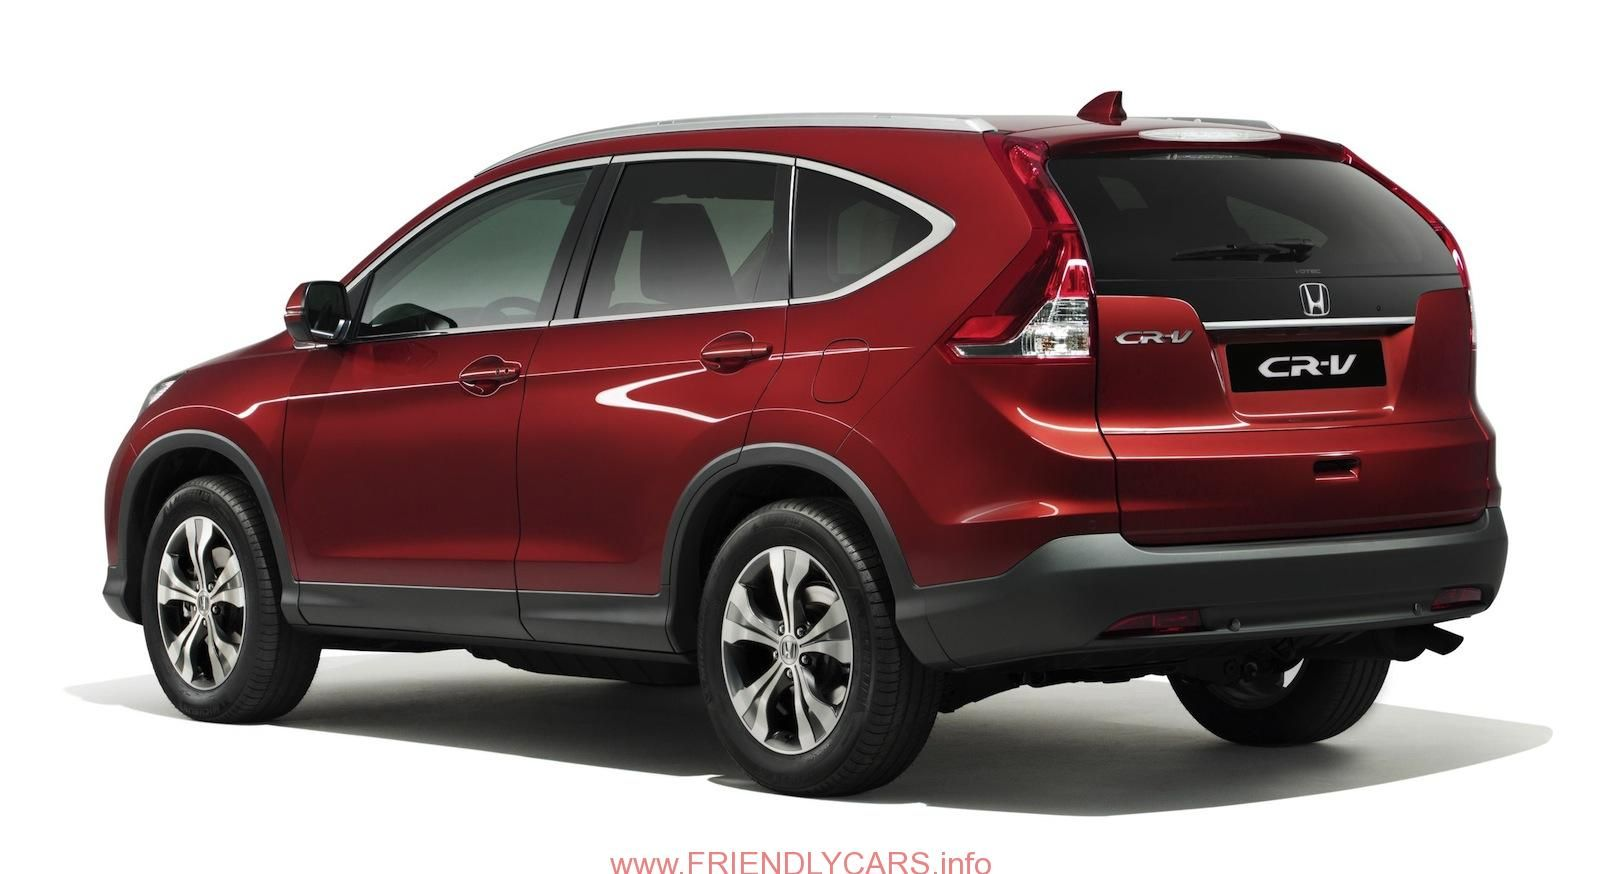 Cool 2014 honda cr v png car images hd seattle area honda dealers honda ridgeline